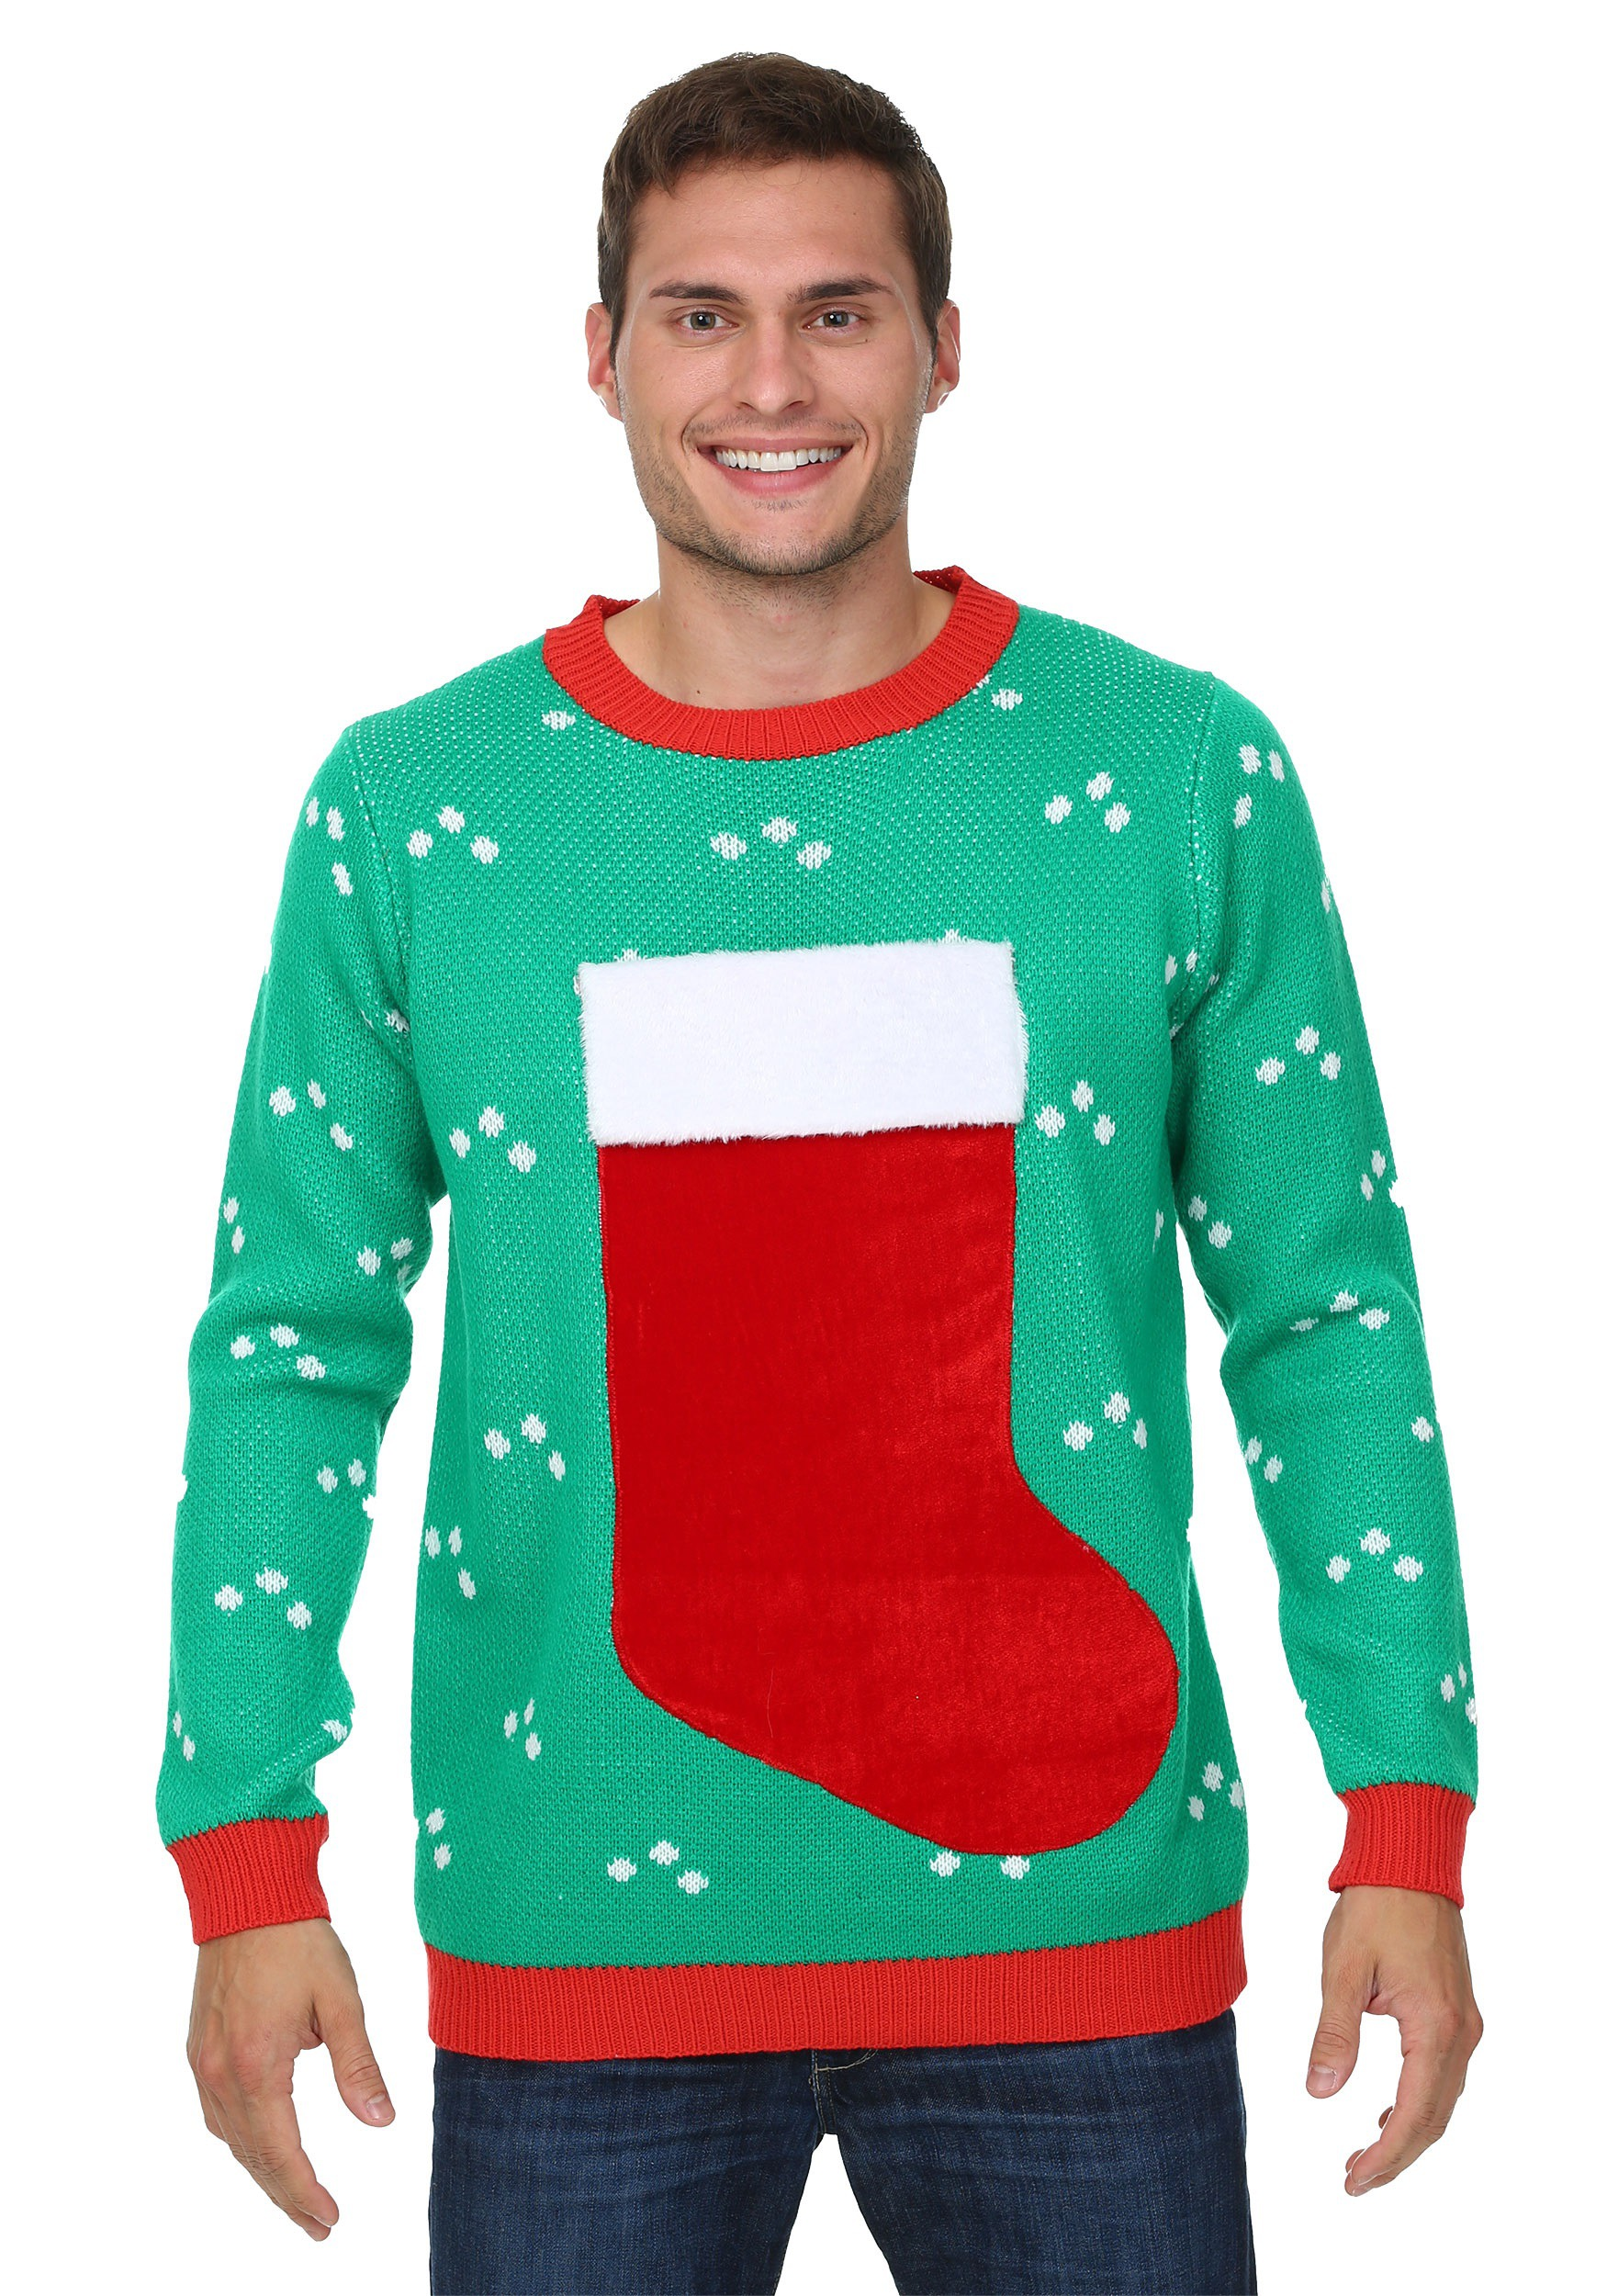 3D Christmas Stocking Ugly Christmas Sweater for Adults